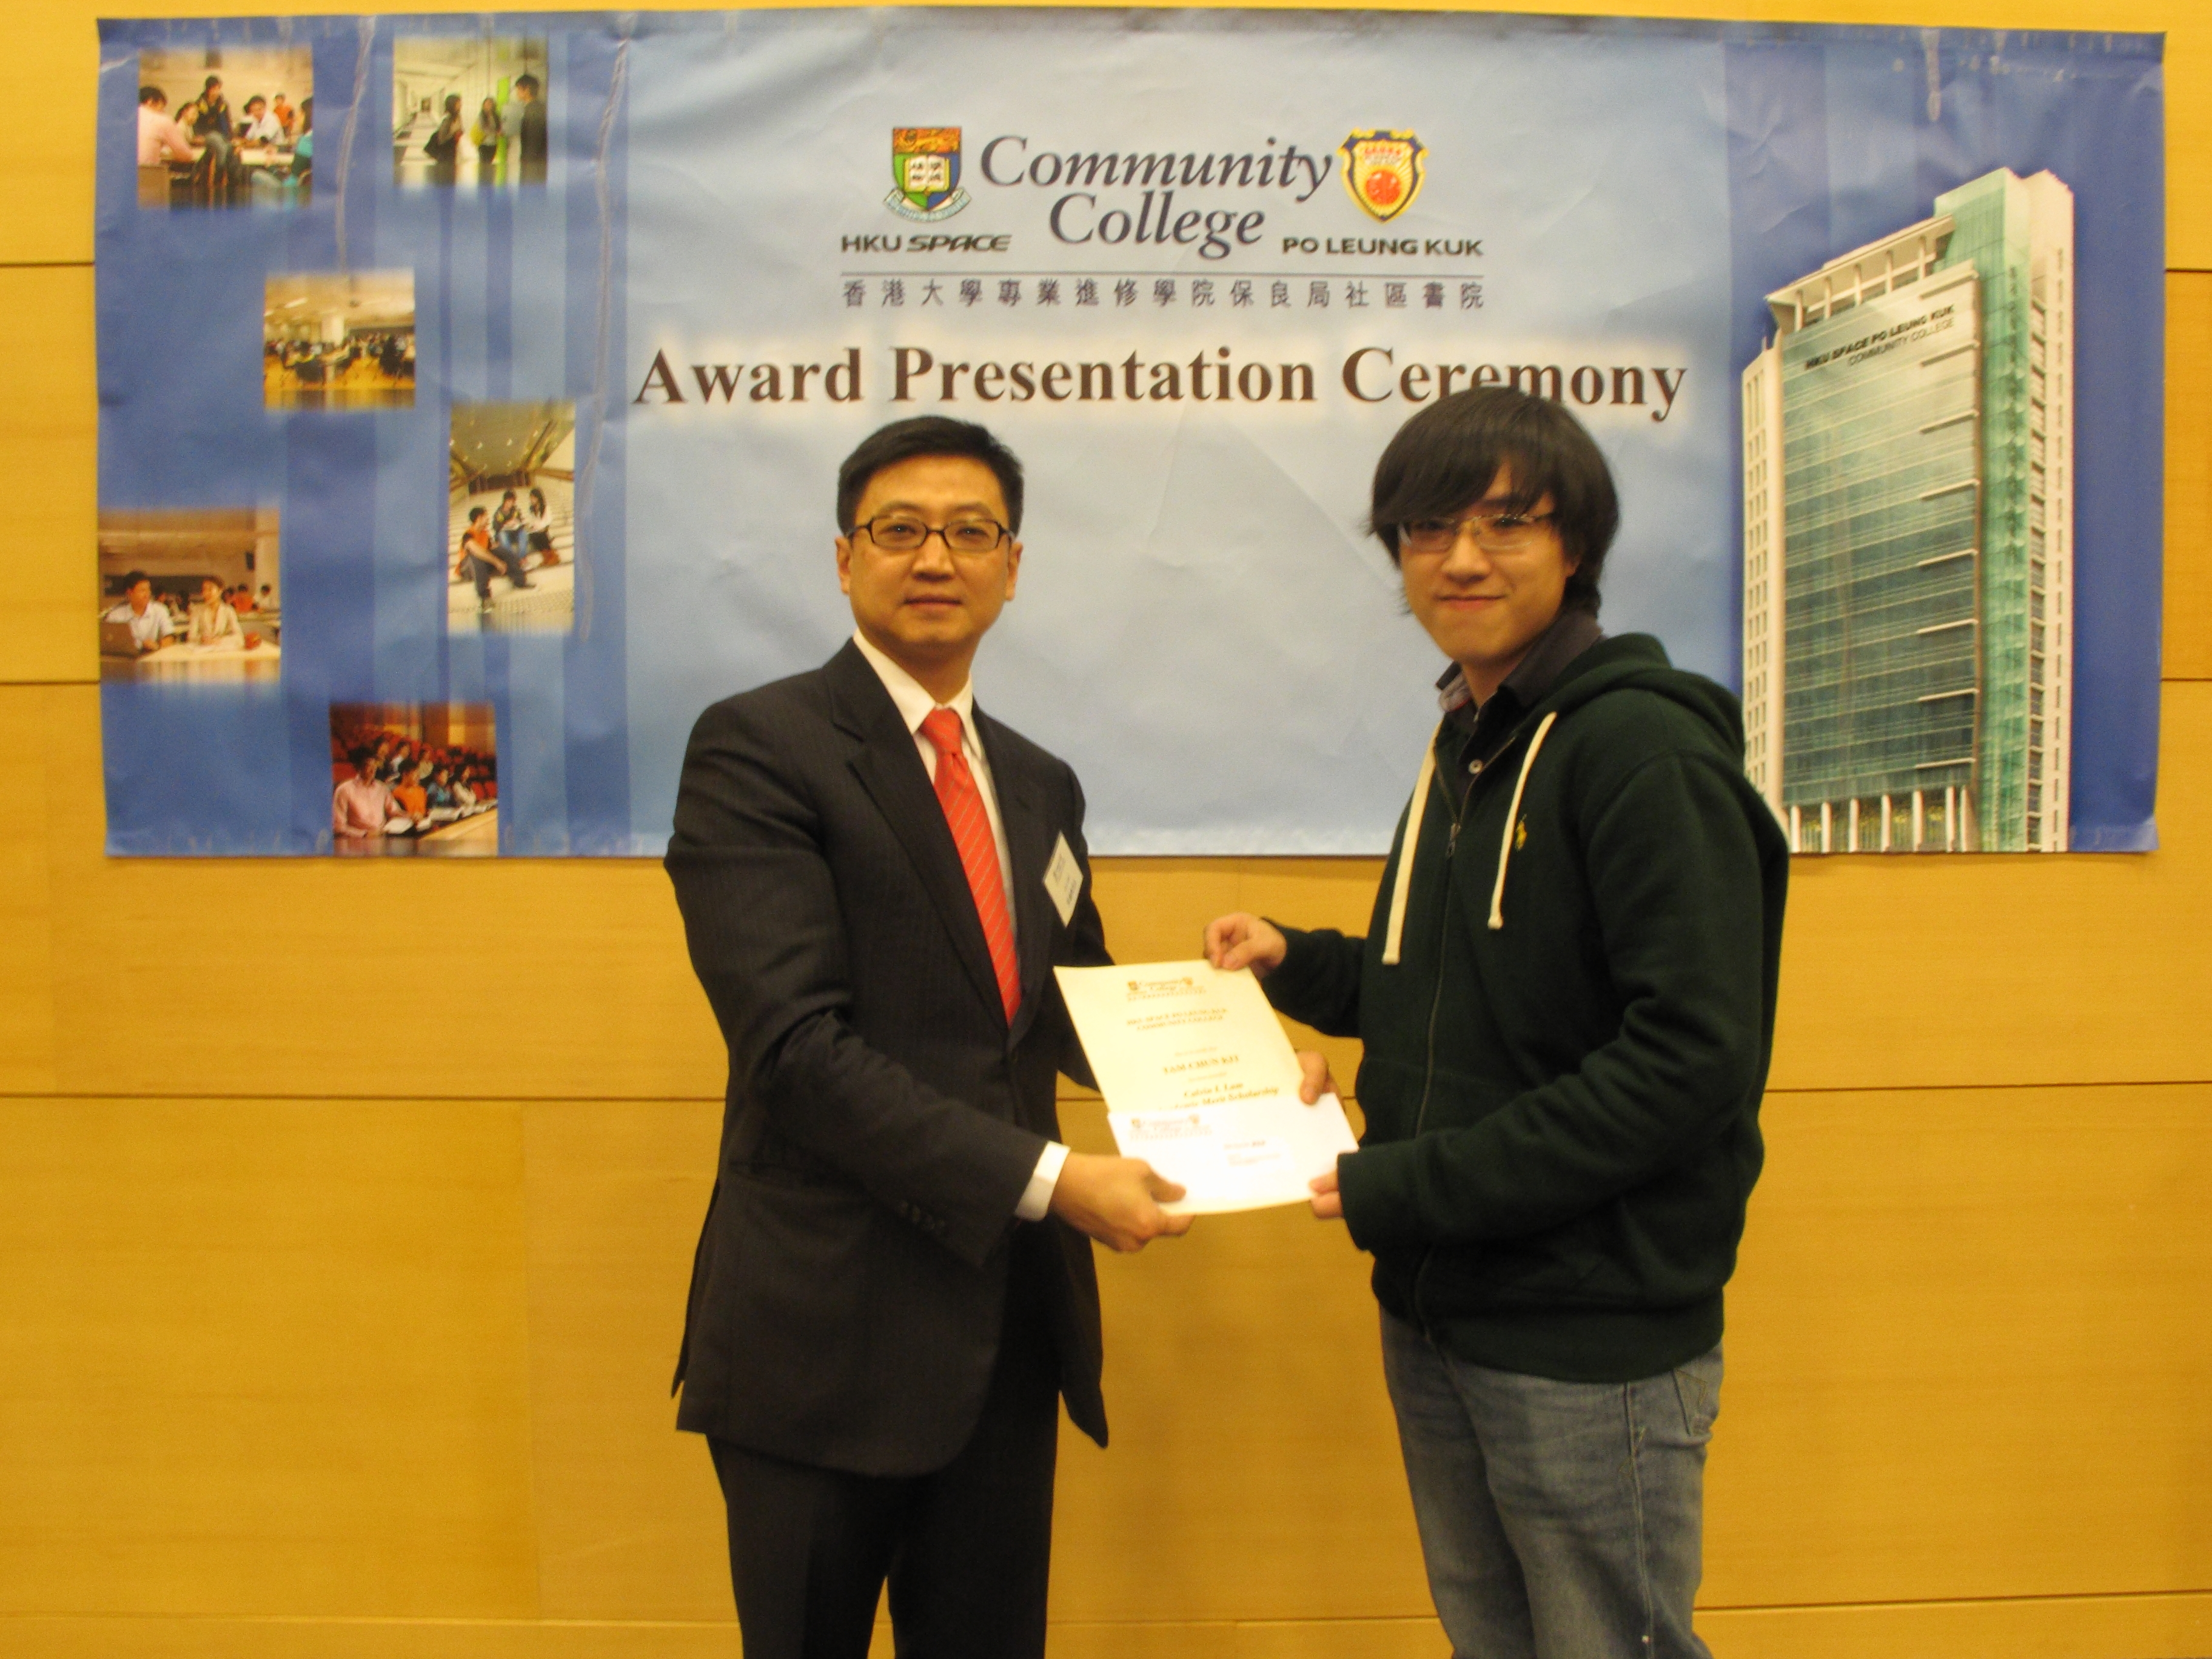 Award Presentation Ceremony 2011 - Photo - 19